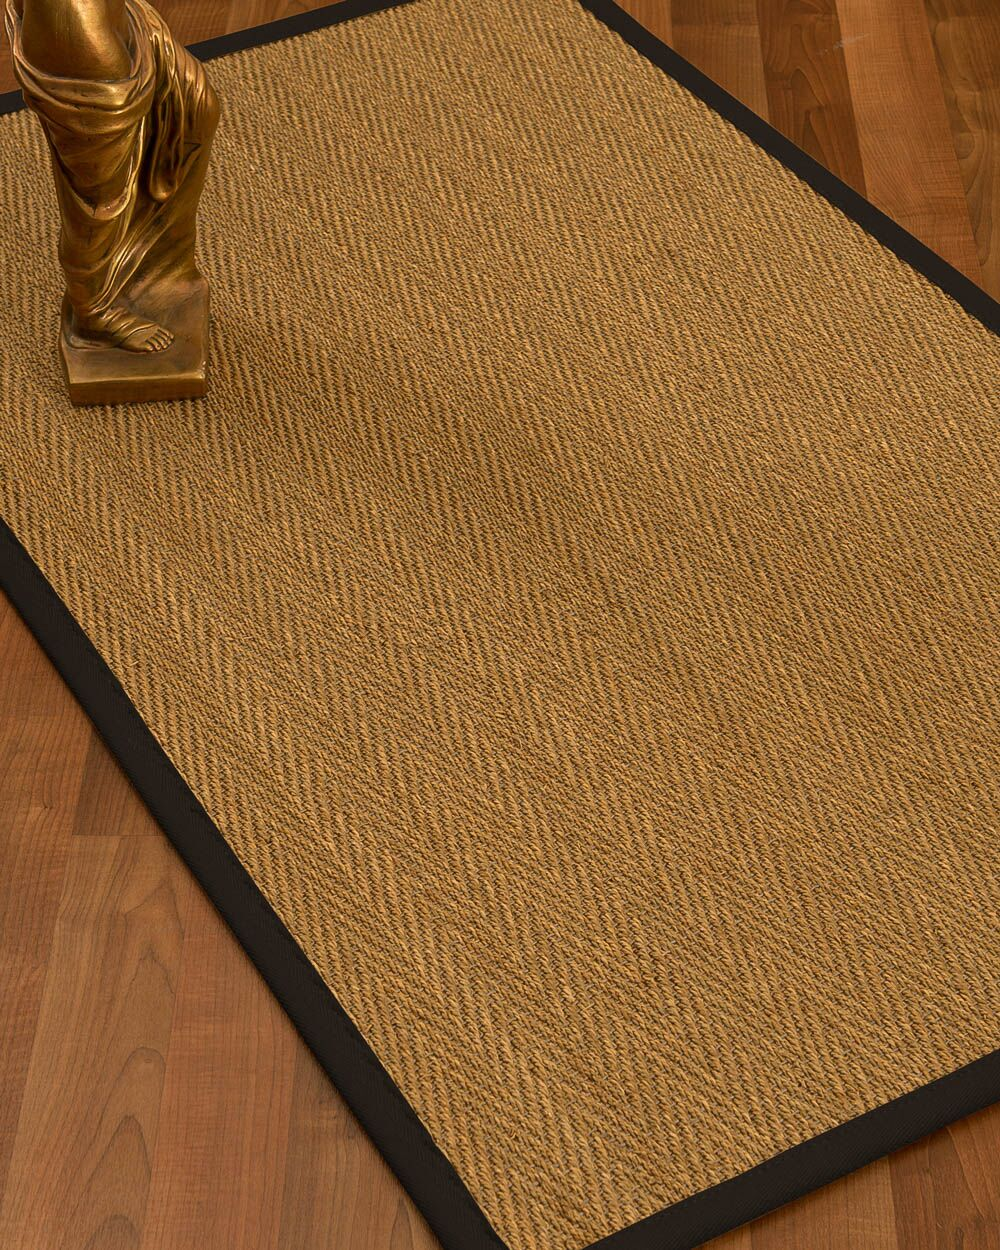 Mahaney Border Hand-Woven Beige/Black Area Rug Rug Size: Rectangle 4' x 6', Rug Pad Included: Yes